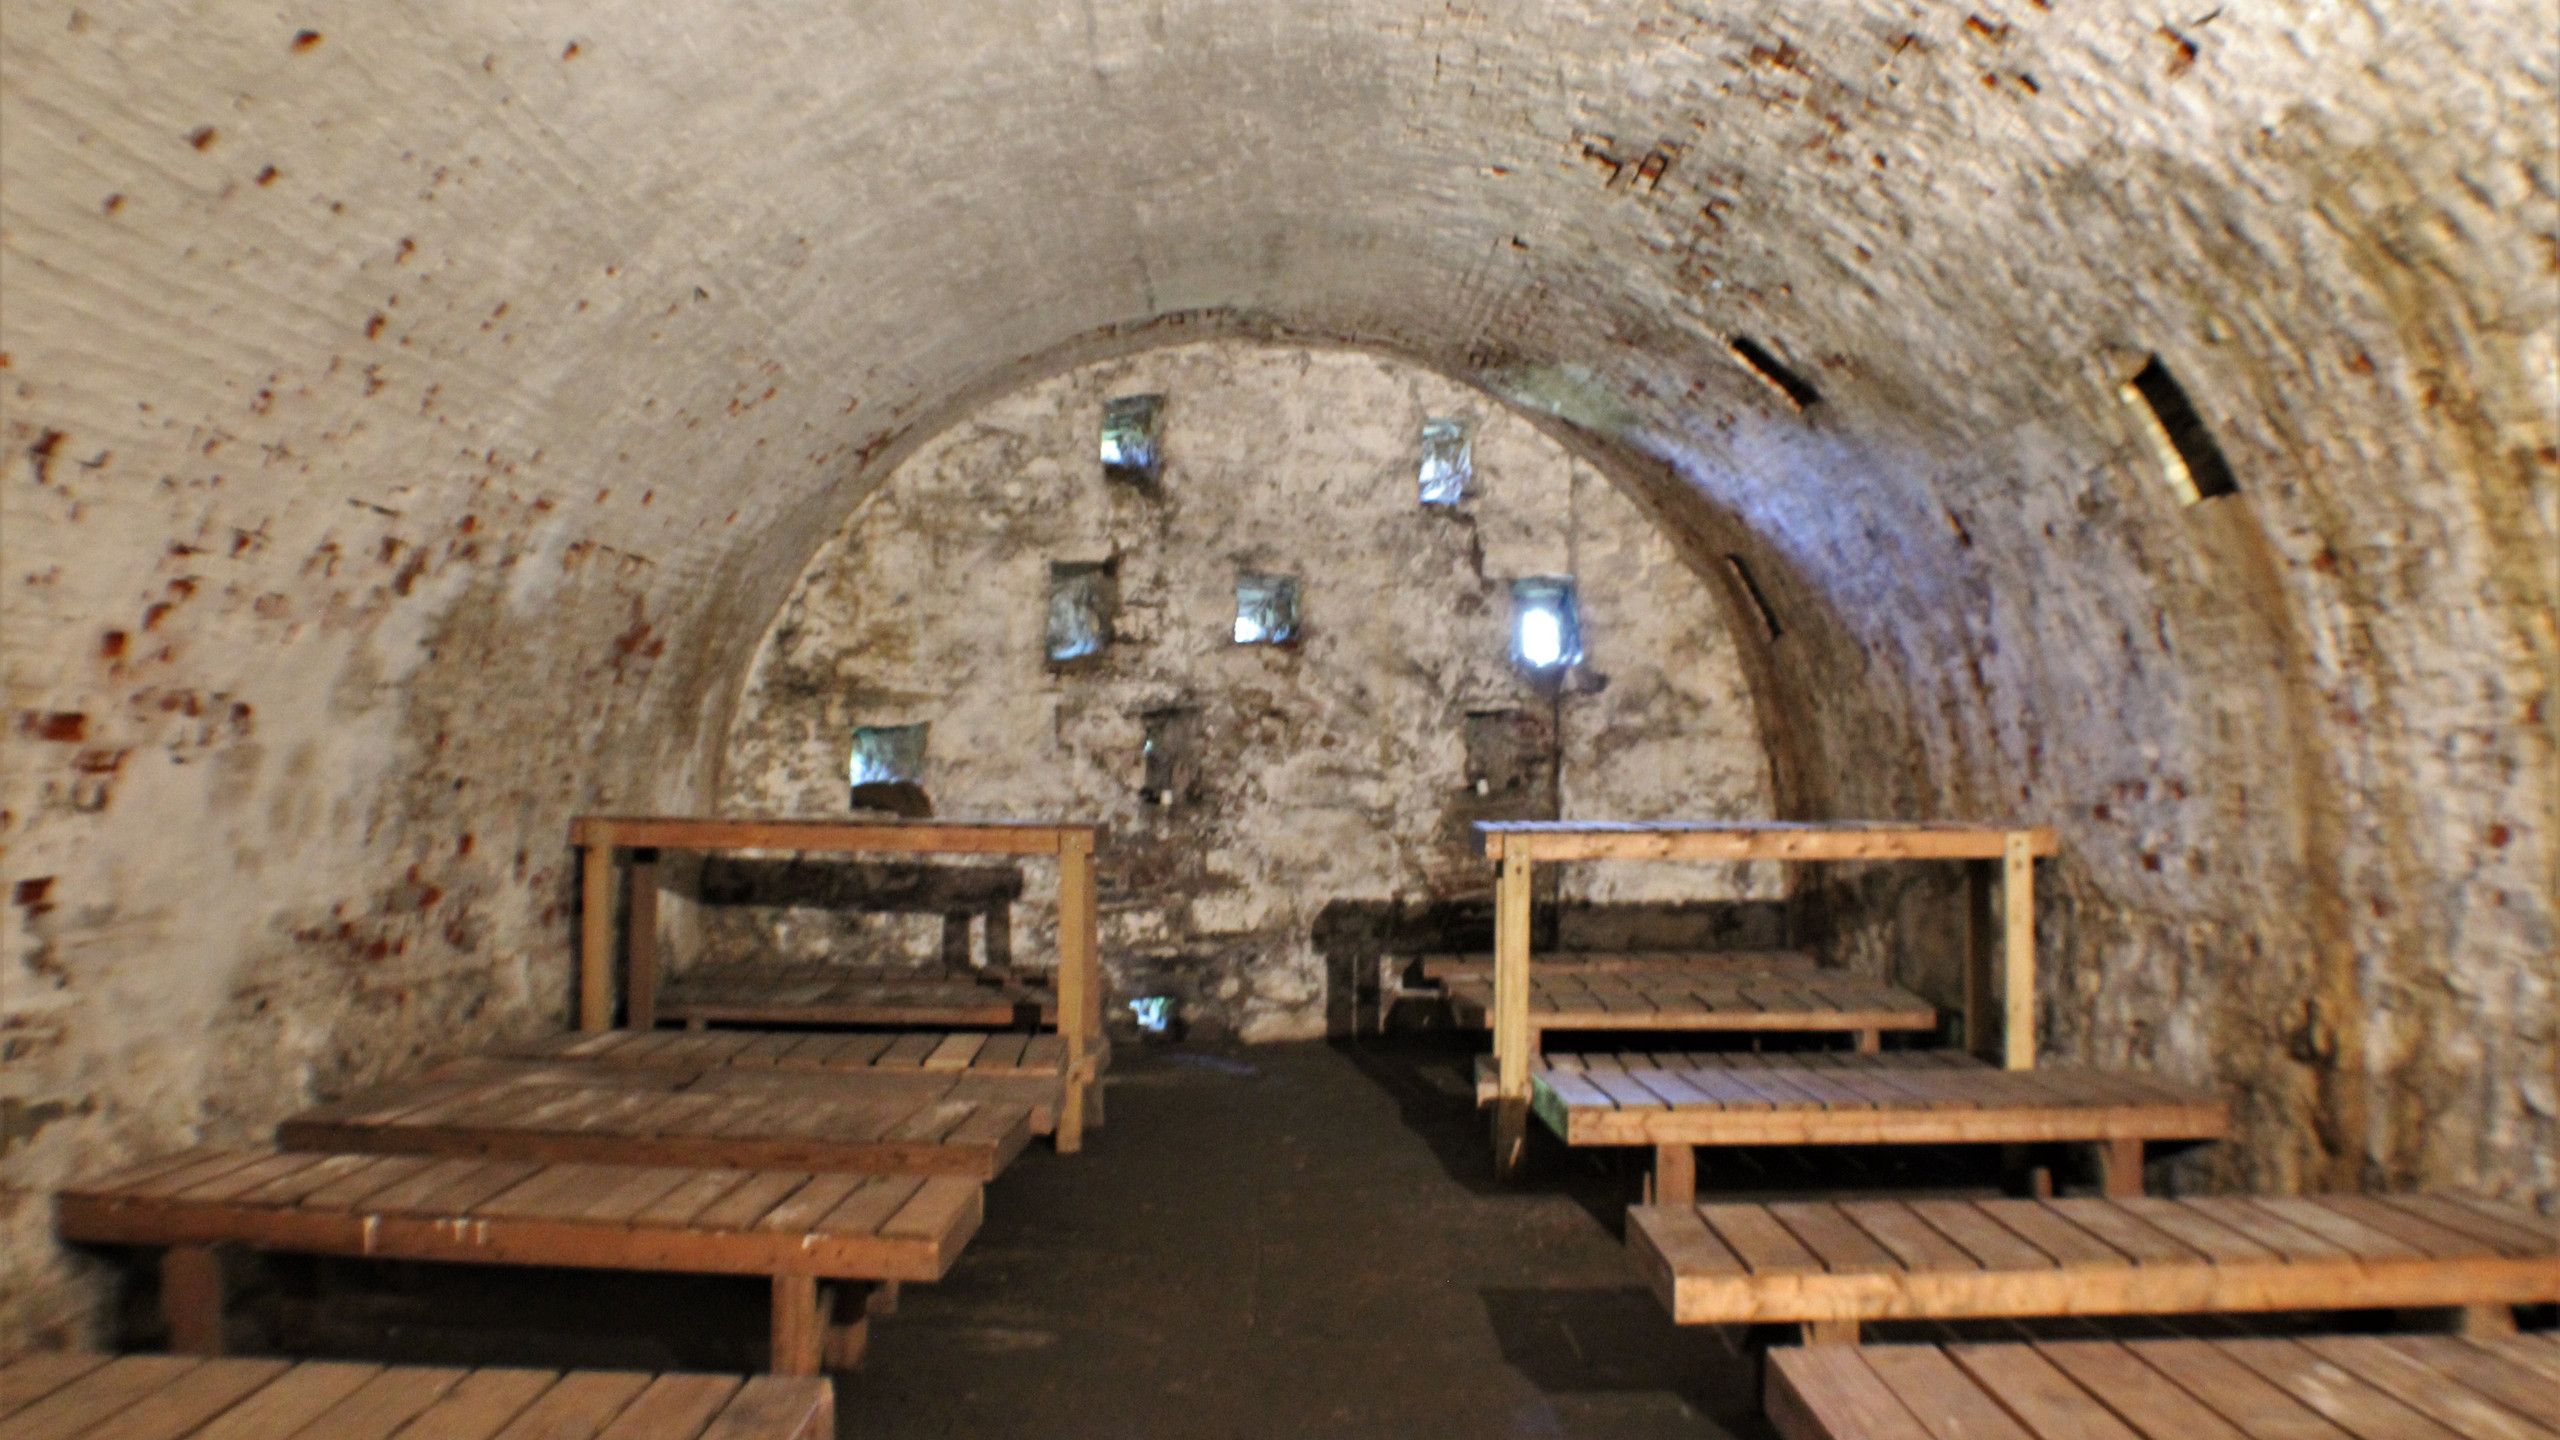 Soldiers' Quarters in the Casemate